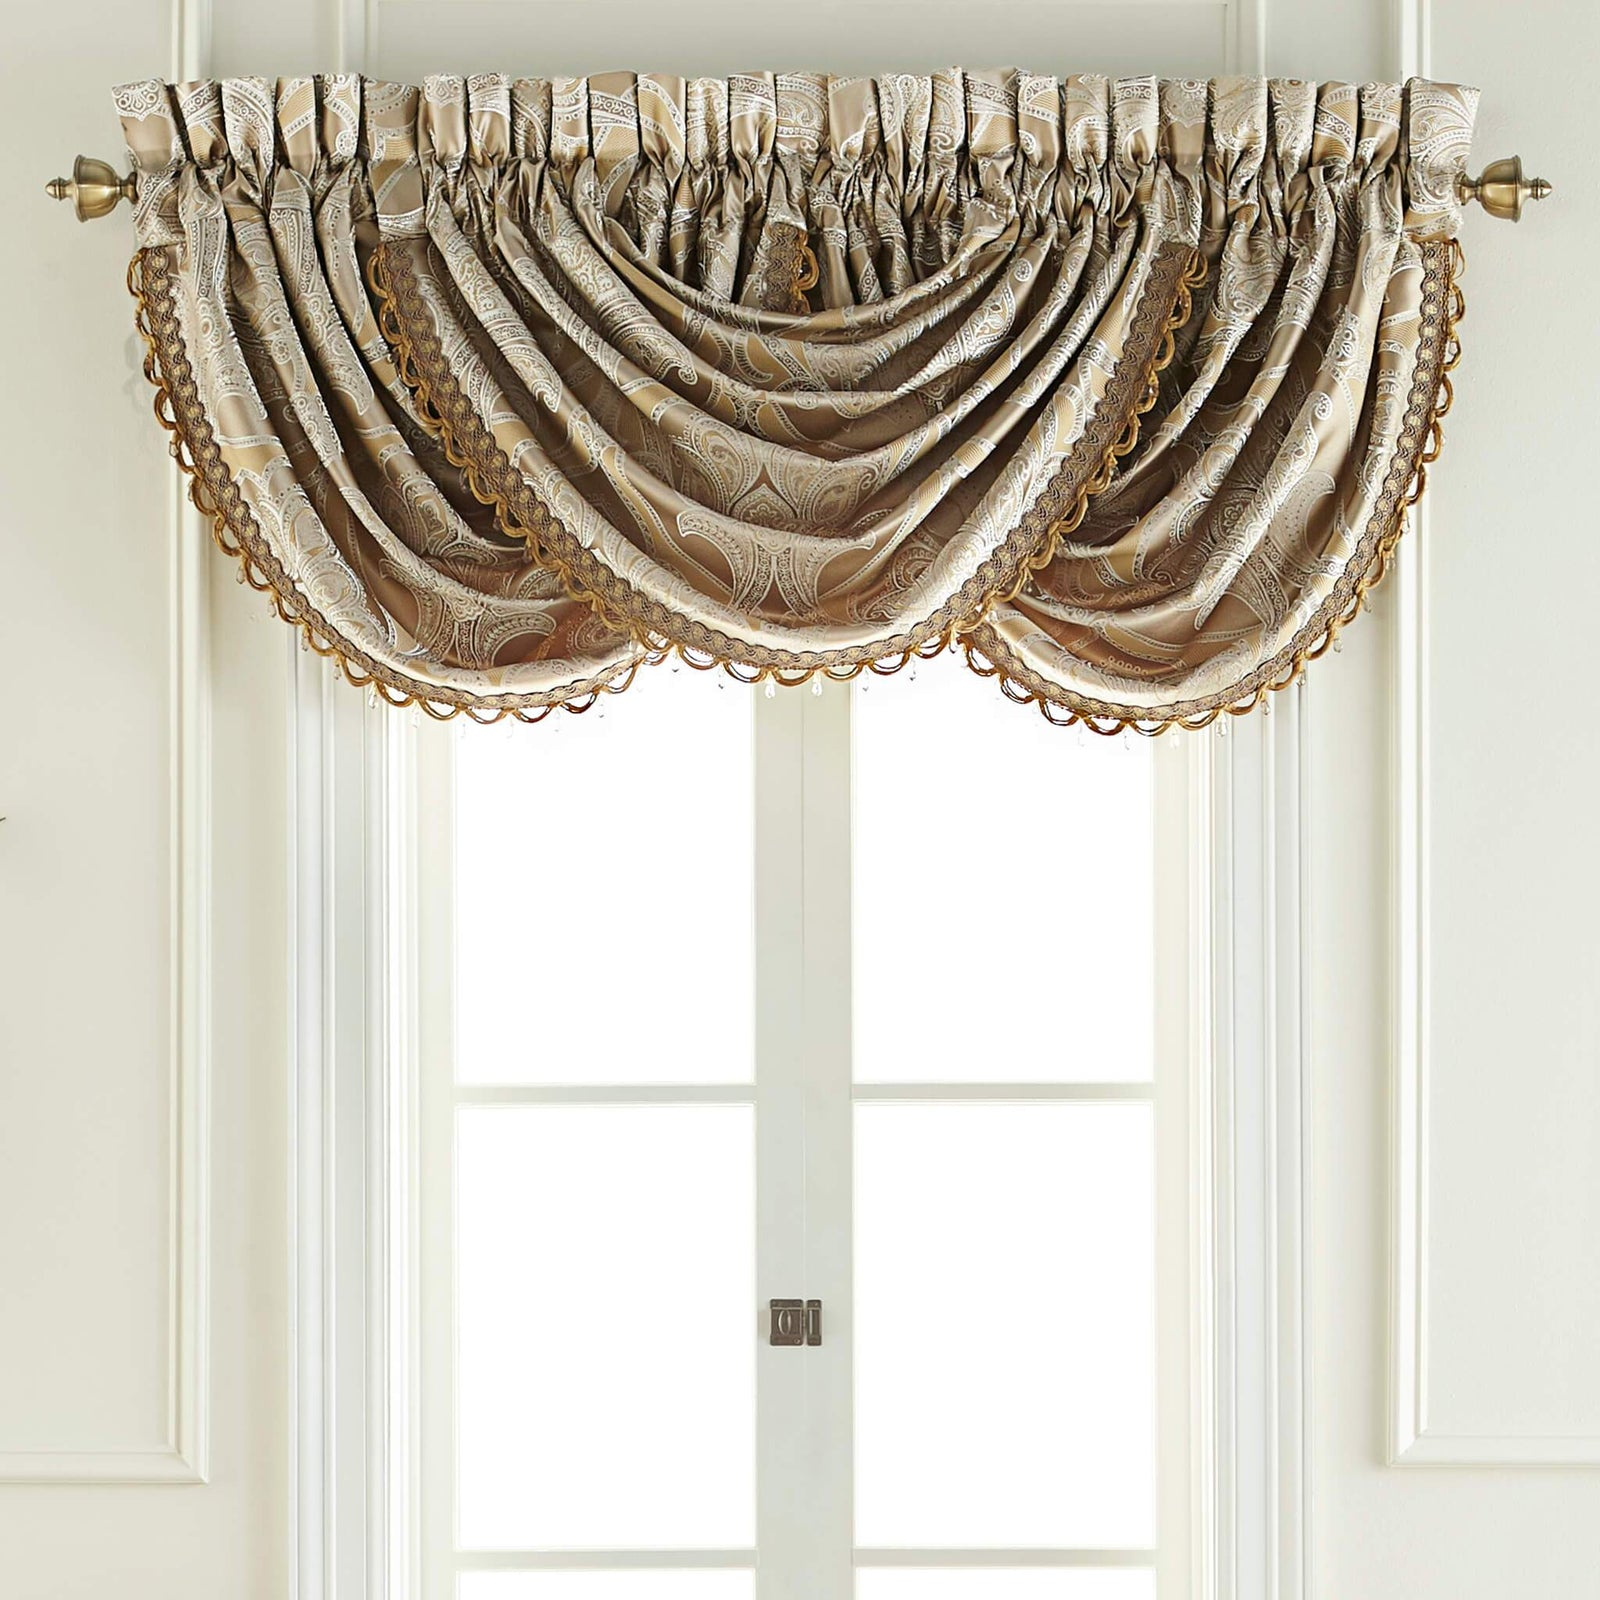 Alexander 48 5 X 33 Waterfall Swag Valance Shop Croscill